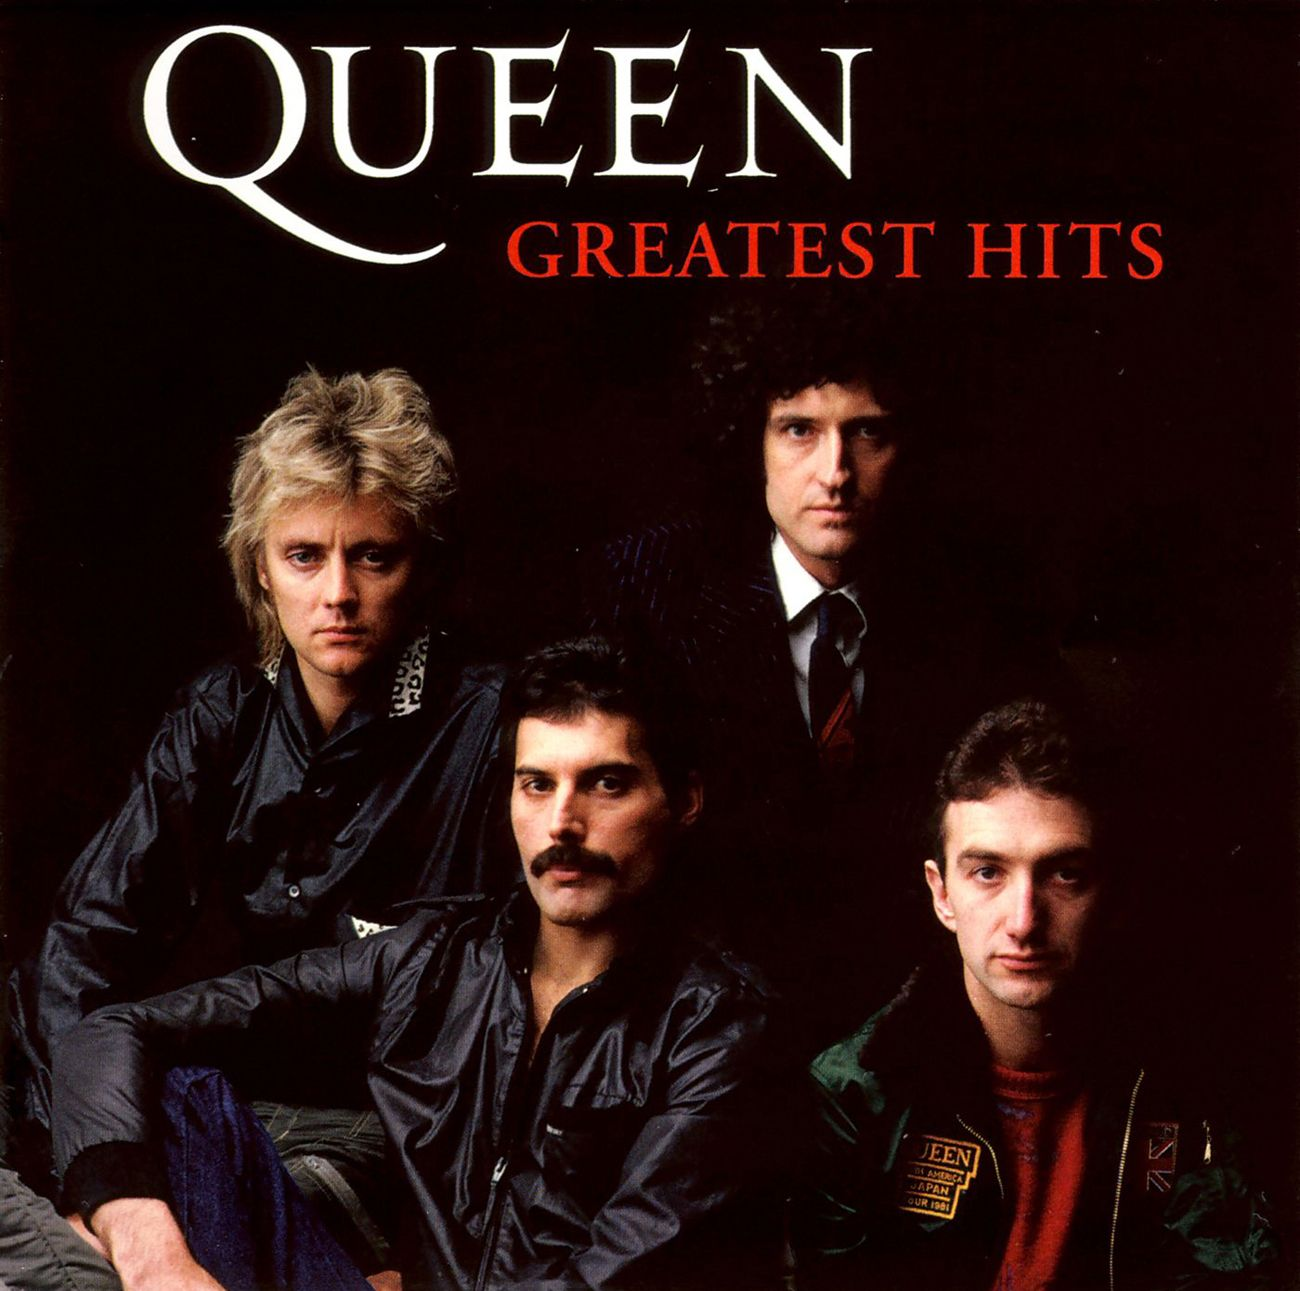 Lord Snowdon/ Queen: Greatest Hits